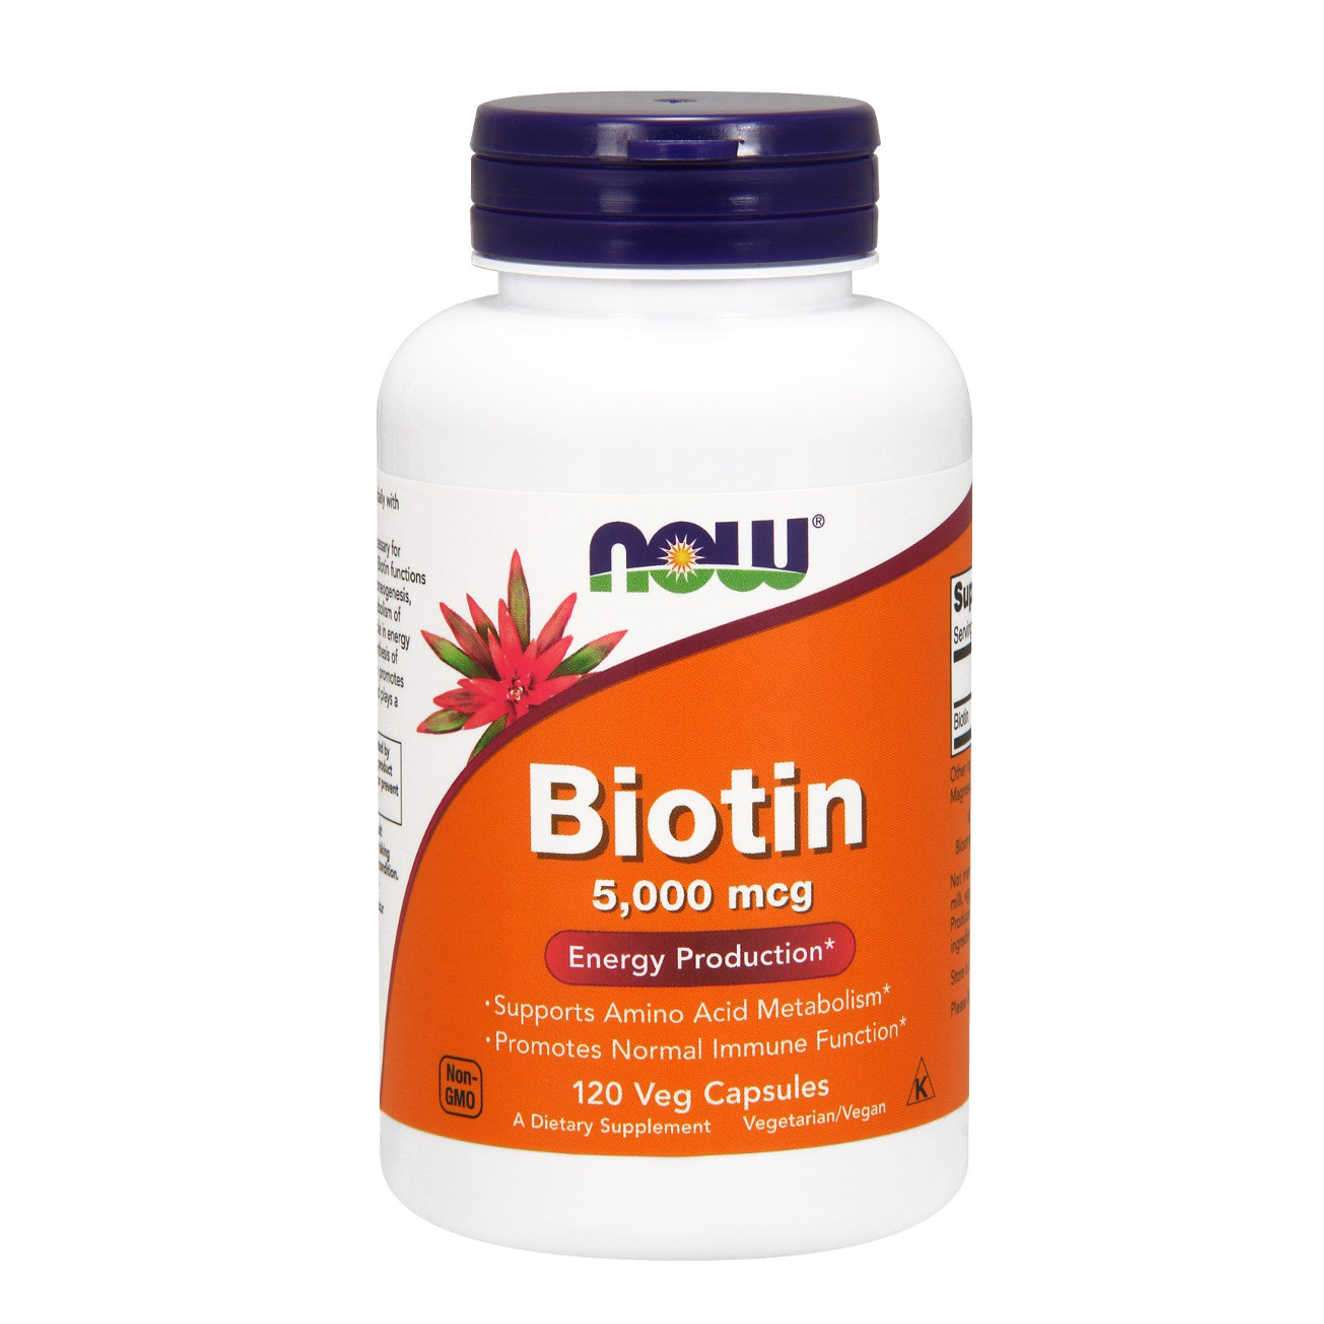 BIOTIN 5000mcg NOW - 120 veg caps